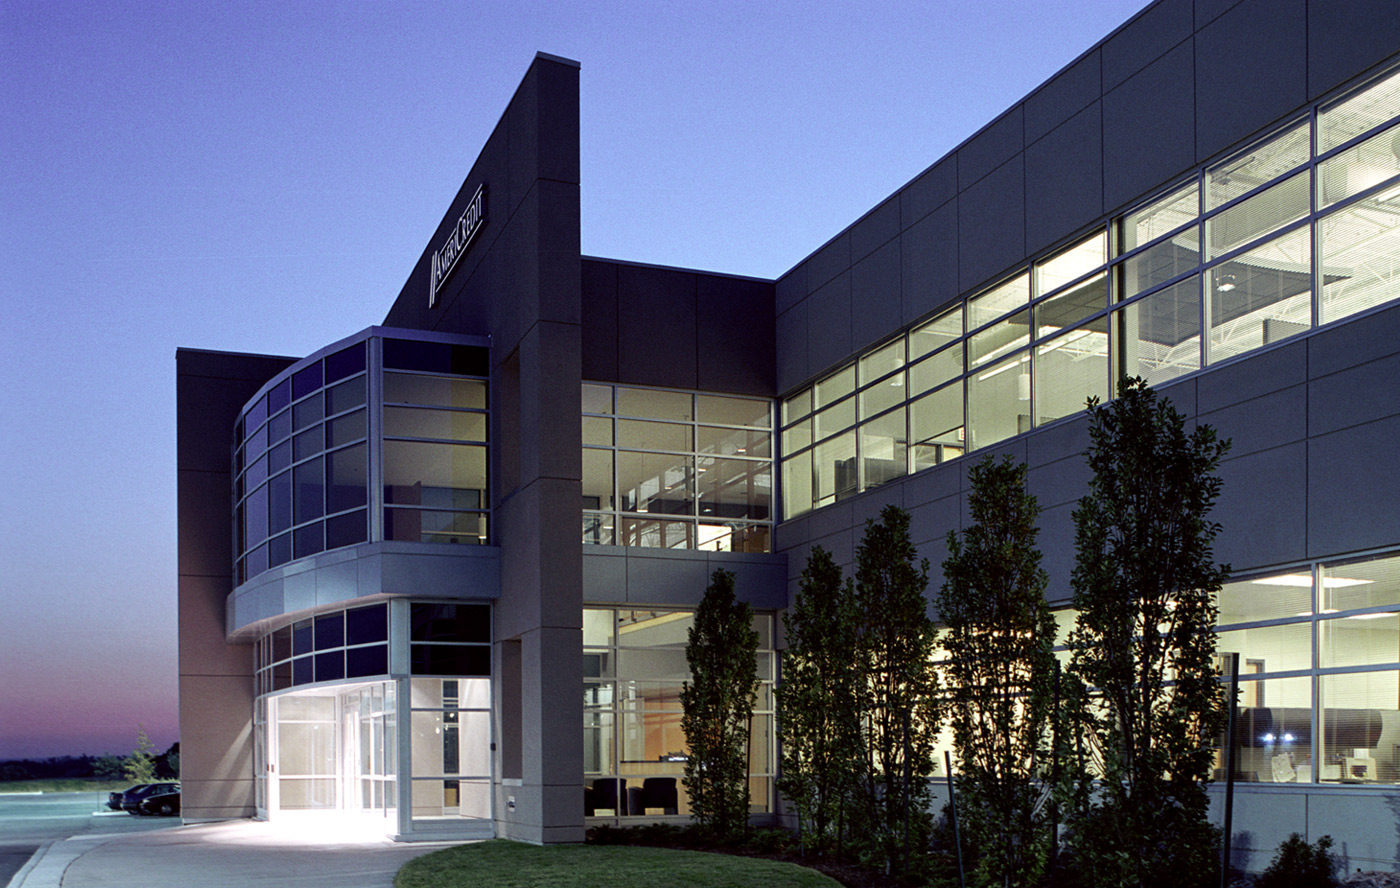 A building built by Signum Corp.